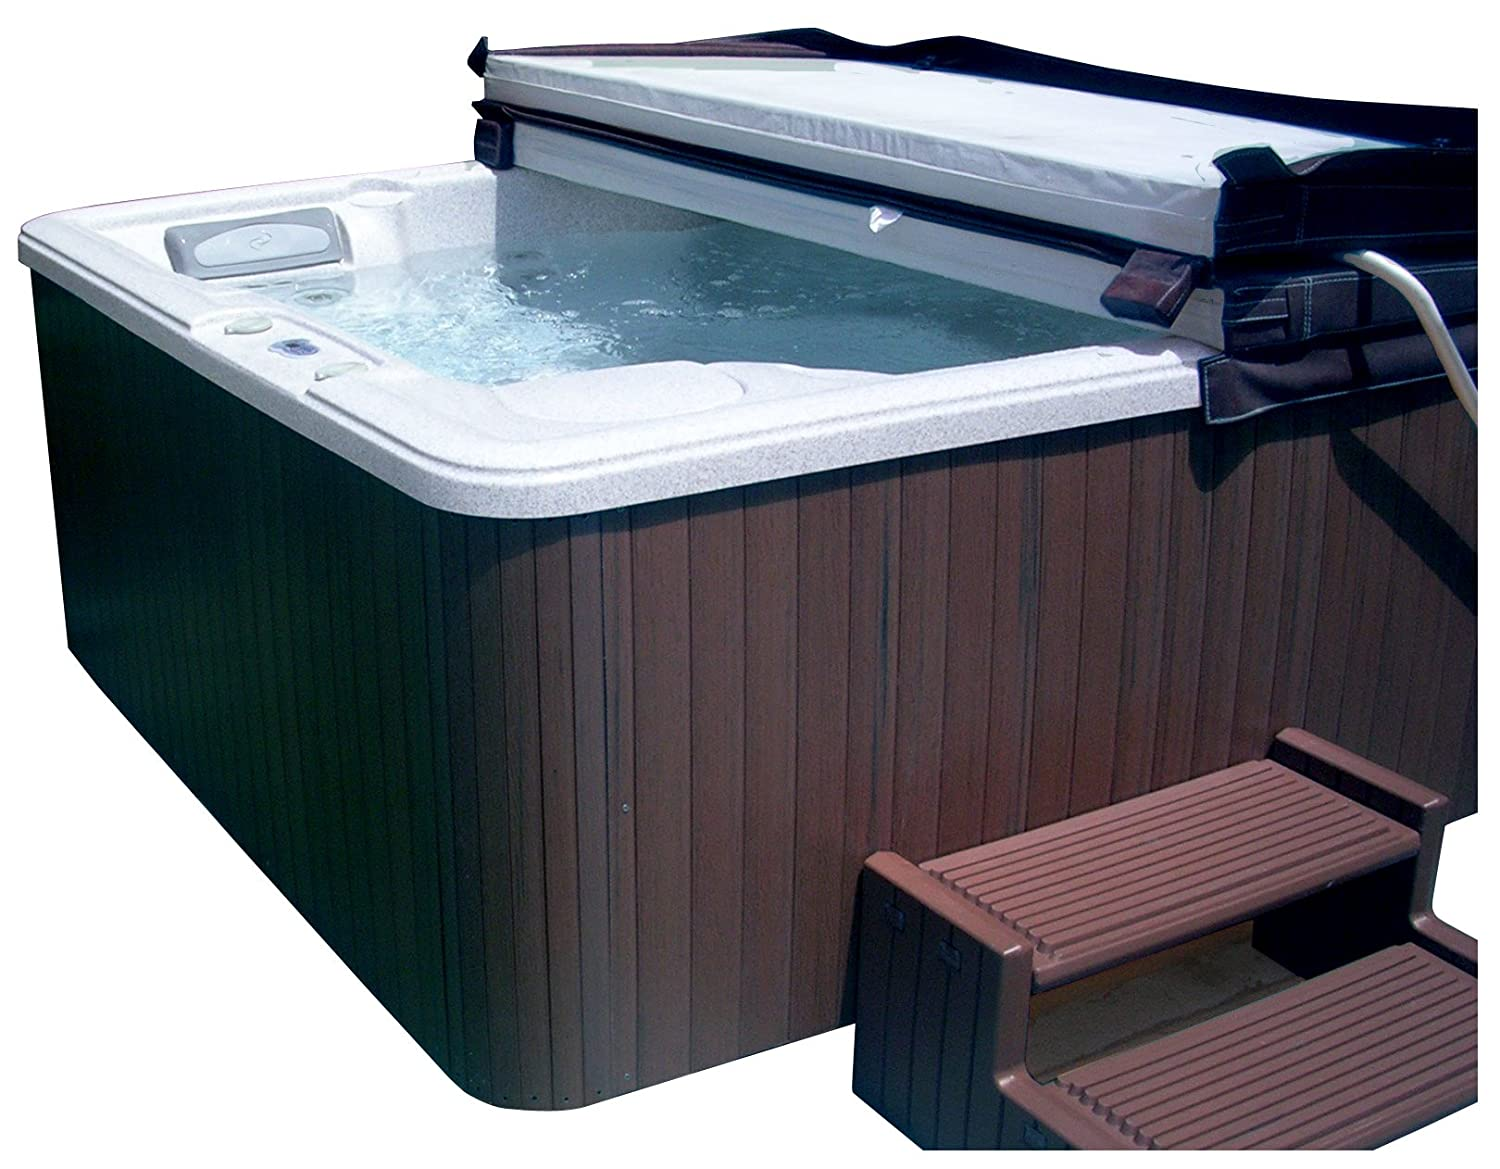 The Best Outdoor Hot Tubs For Your Garden: Reviews & Buying Guide 5